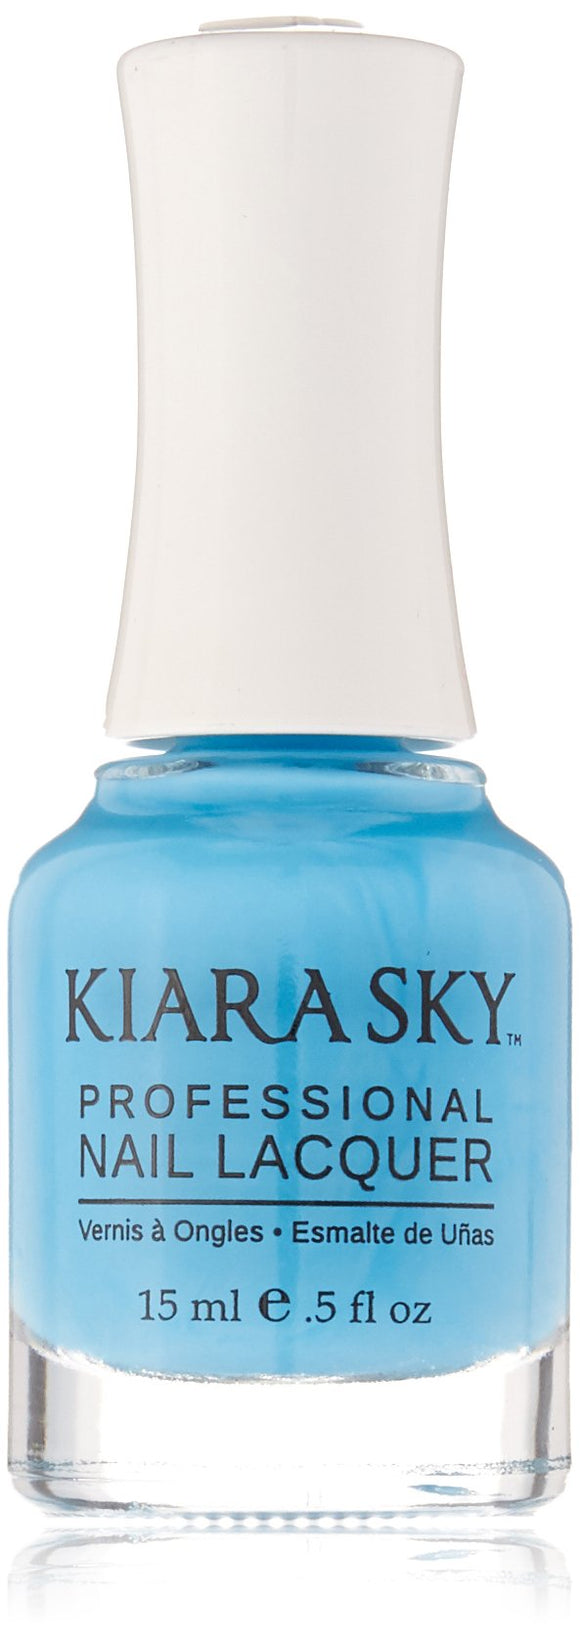 Kiara Sky Nail Lacquer - 15 mL (Skies The Limit - KSN415)